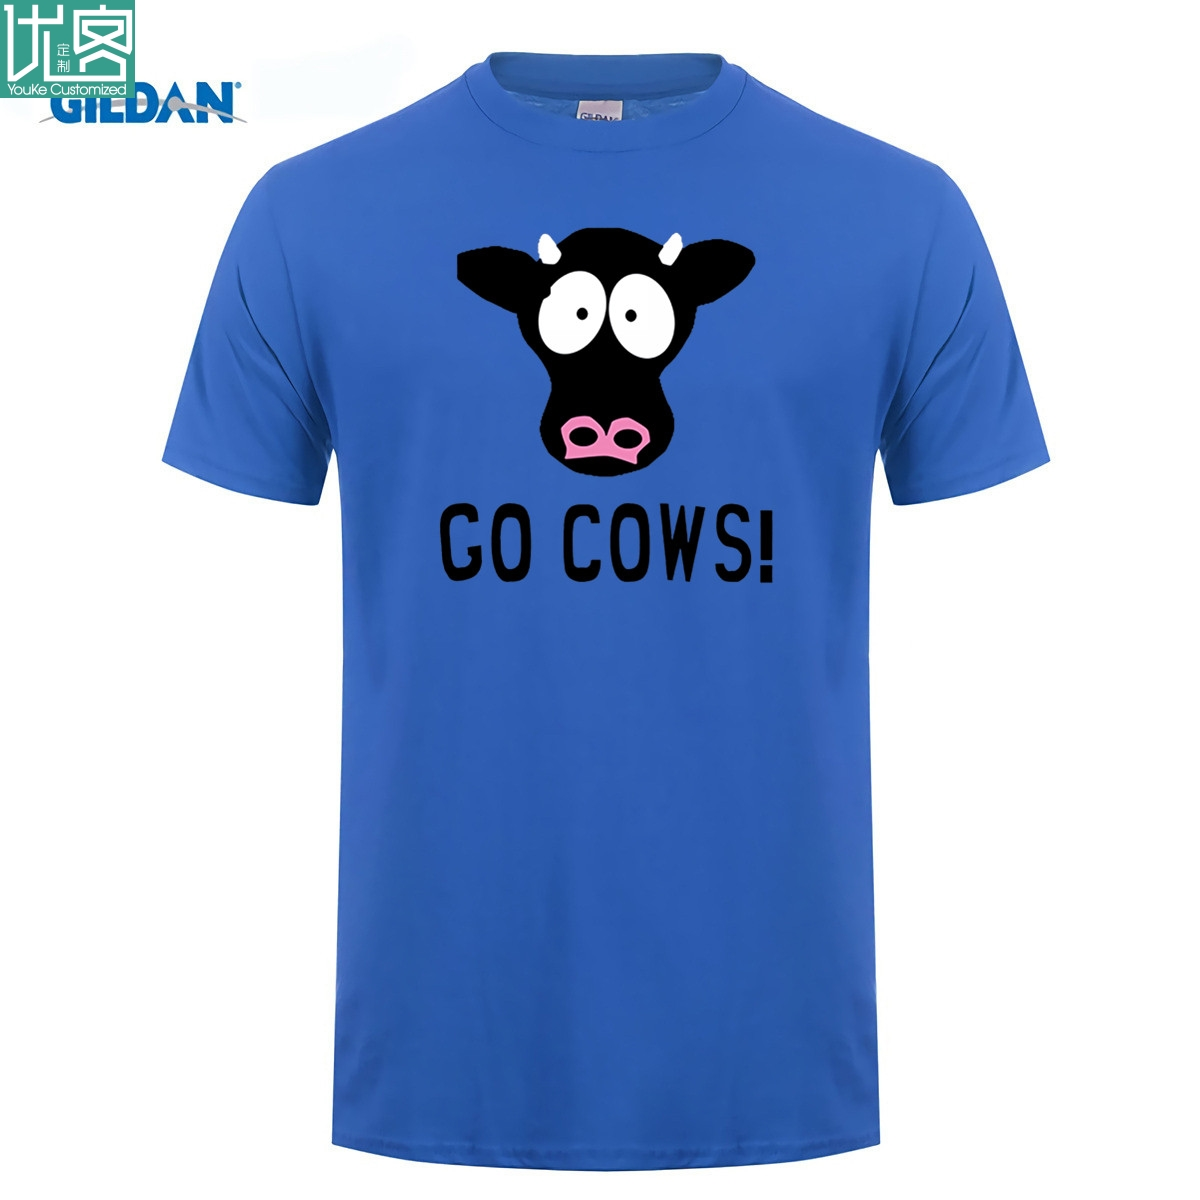 Funny South of the Park T-Shirt GO COWS image